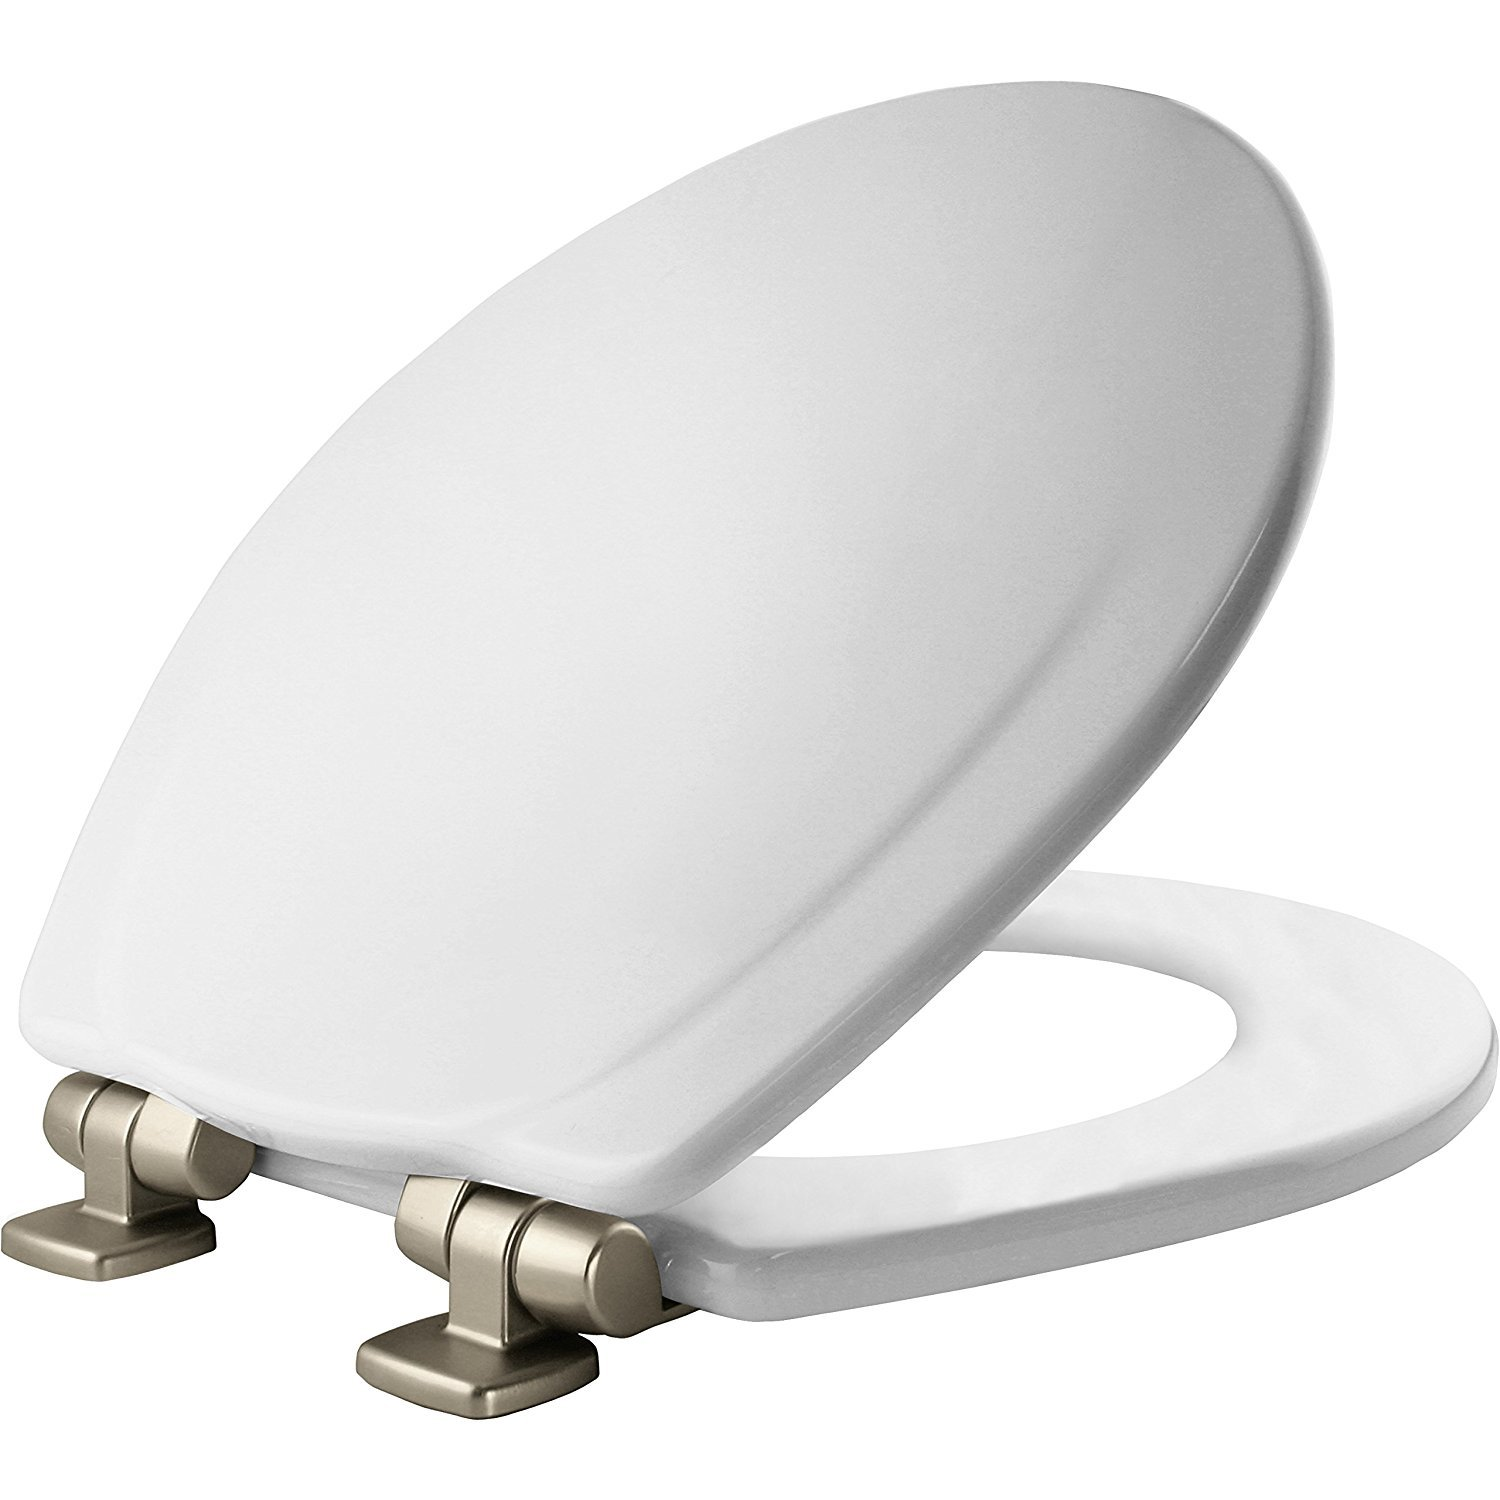 Mayfair Molded Wood Toilet Seat featuring Slow-Close, STA-TITE Seat Fastening System and Brushed-Nickel Metal Hinges, Round, White, 30NISLB 000